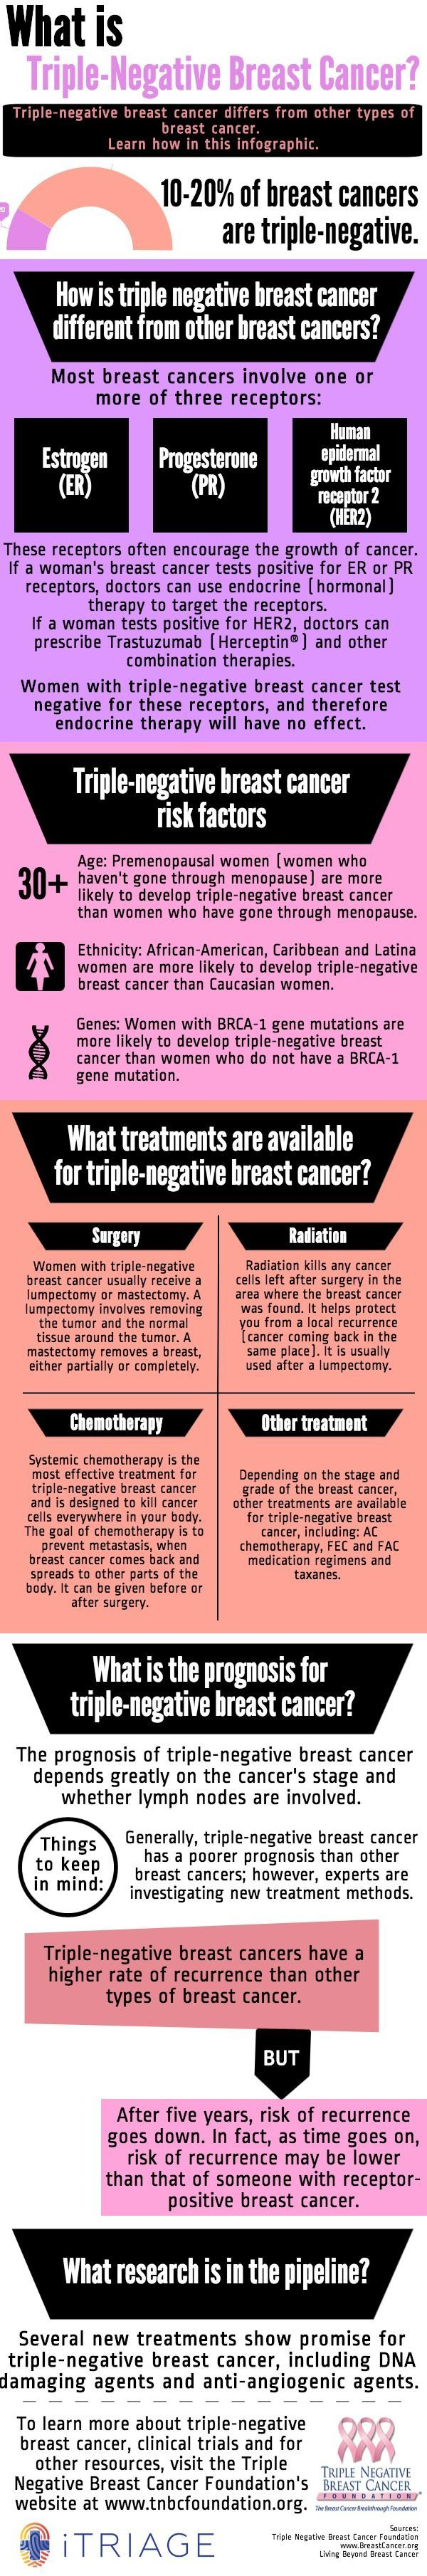 a look at breast cancer and new treatments available today Stage 4 breast cancer is cancer that has spread beyond the original site, typically to distant lymph nodes, the brain, liver, lungs, or bones.